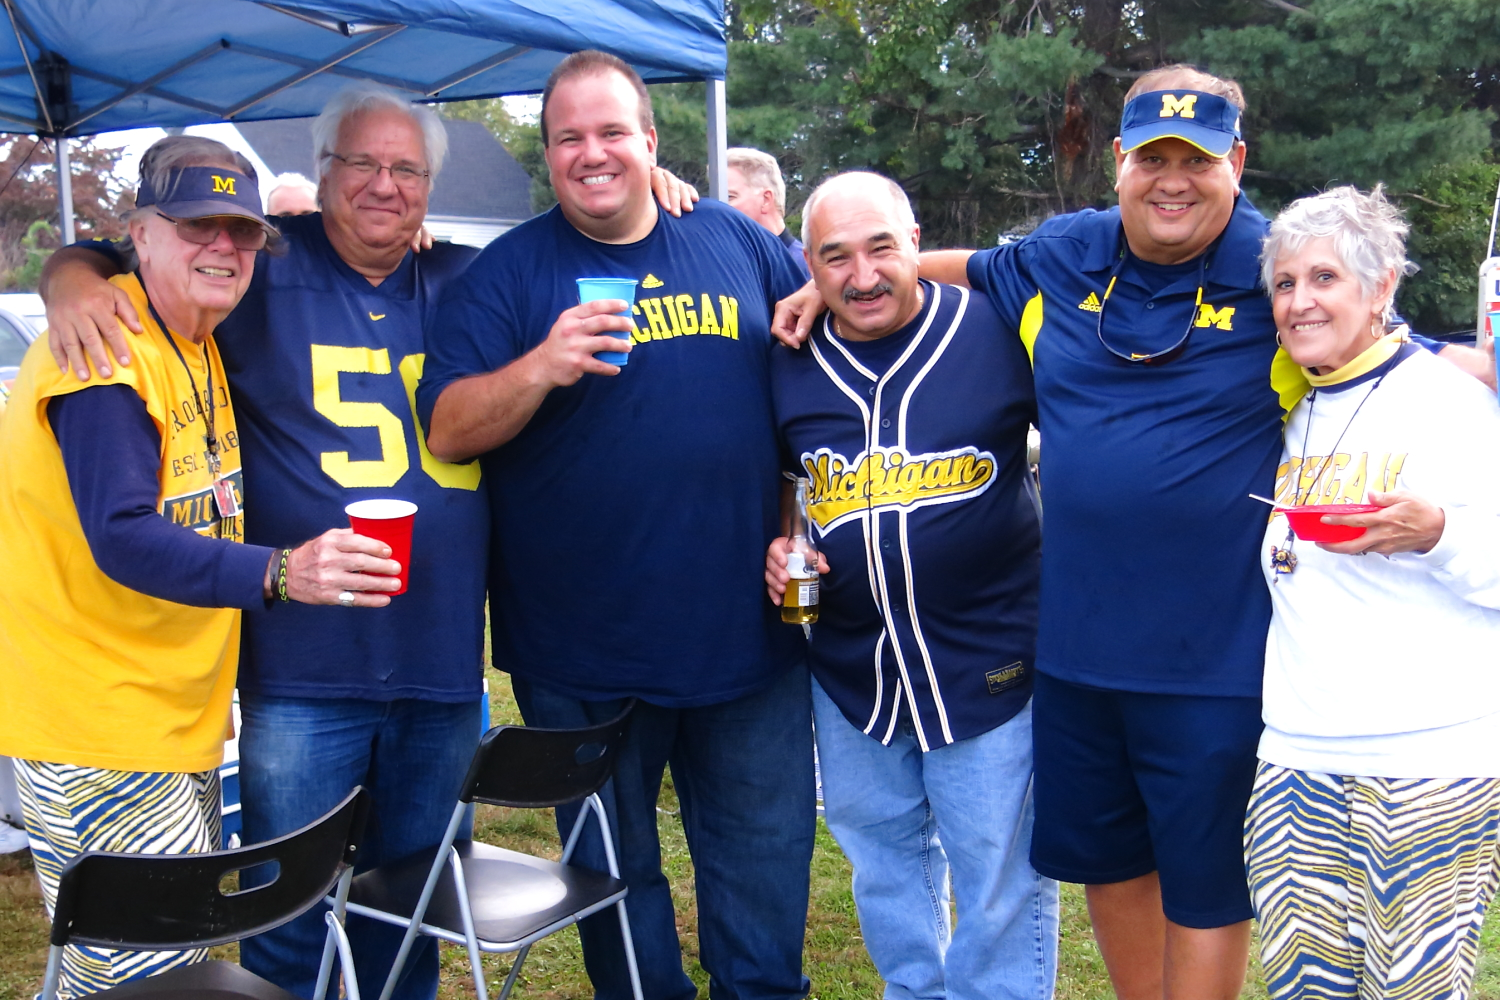 9/21/13 Michigan 24-UCONN 21  : Frankie, Godfather, and the NYC crew pose for a group picture in Storrs.